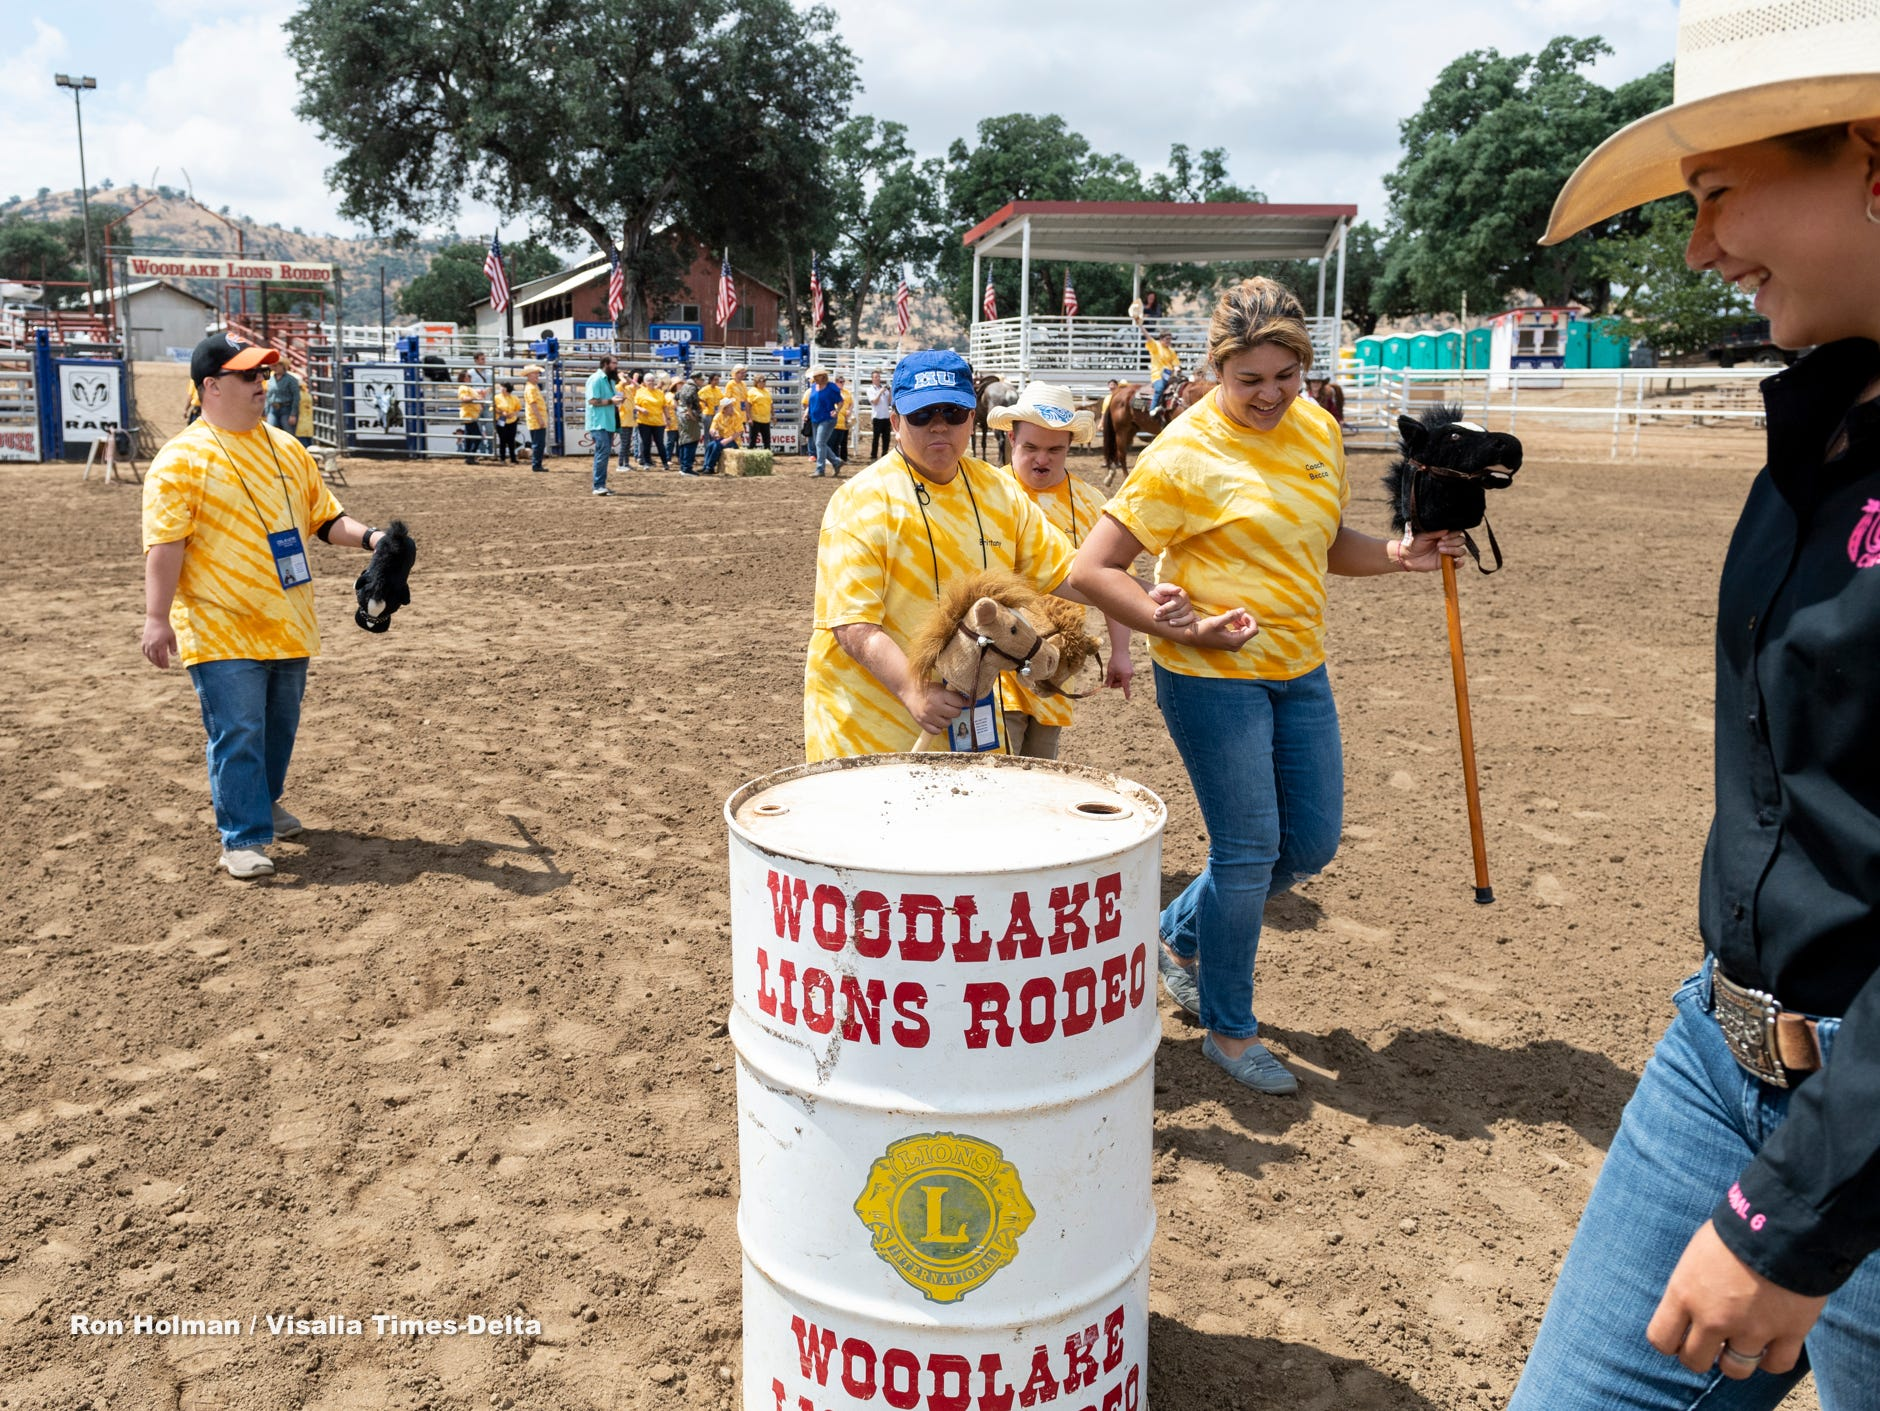 """Ellie Bonilla, right, leads staff and clients through a barrel race during the first """"High-Five Rodeo"""" at the Woodlake Rodeo Grounds on Friday, May 10, 2019. Participants from Exeter's Center for Discovery and Learning were paired up with real-life cowboys and cowgirls and other performers to experience modified rodeo-related stations in the rodeo arena."""